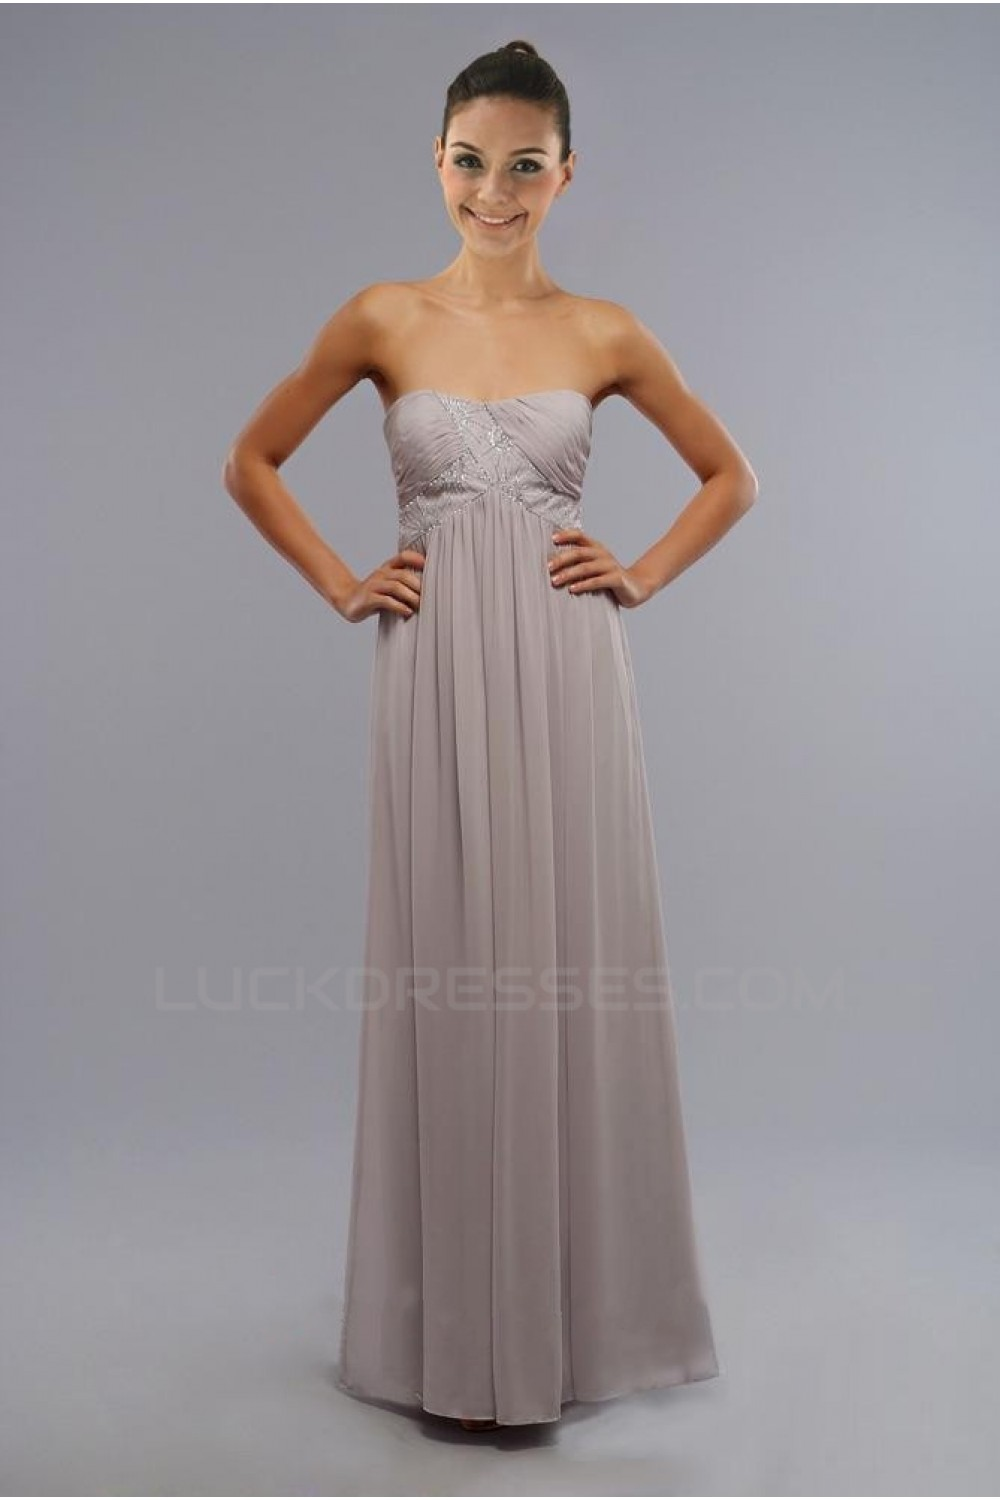 Strapless Floor-Length Bridesmaid Dresses/Wedding Party Dresses ...